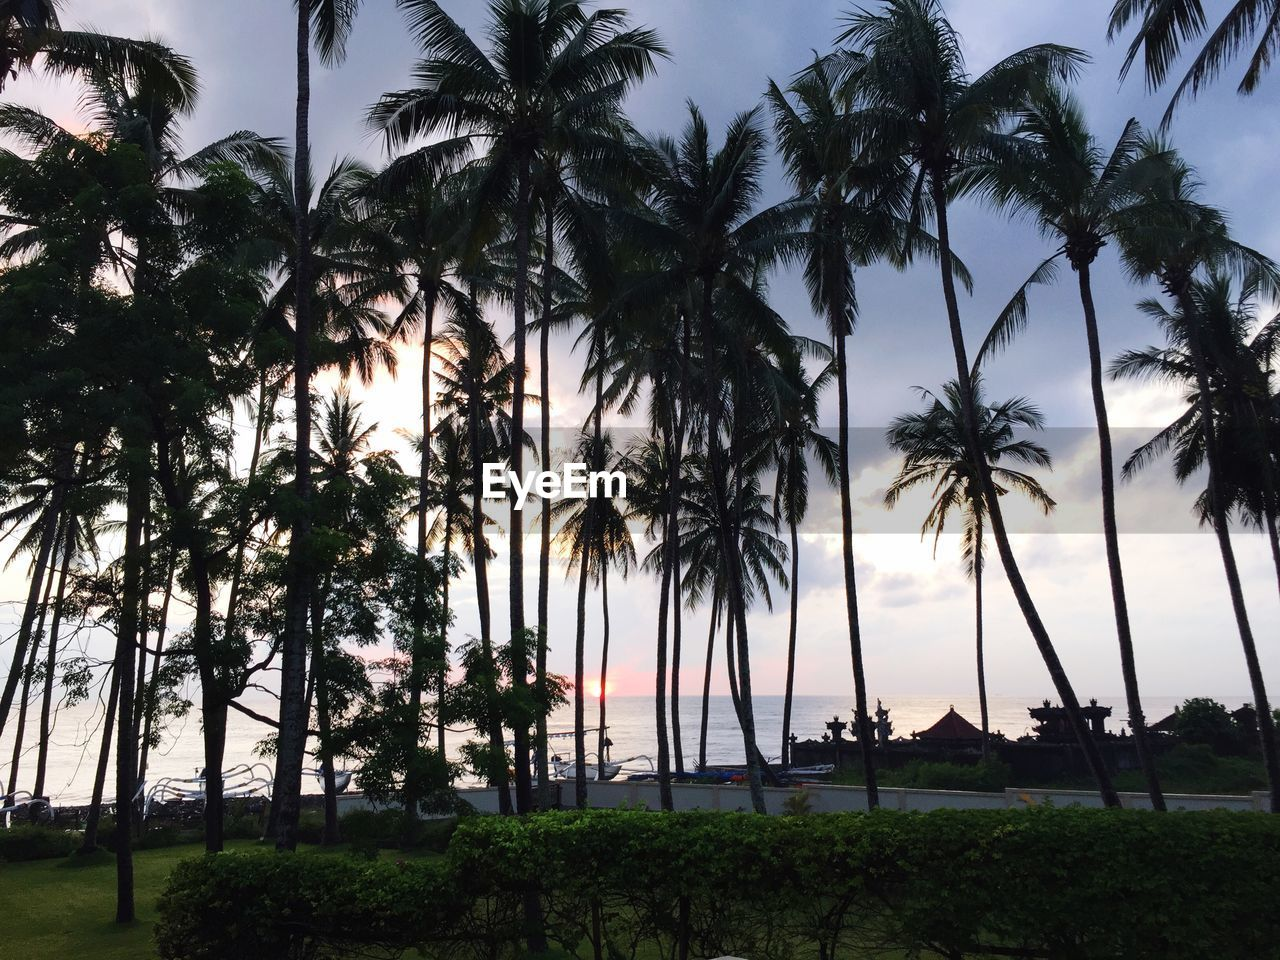 SILHOUETTE PALM TREES BY SEA AGAINST SKY